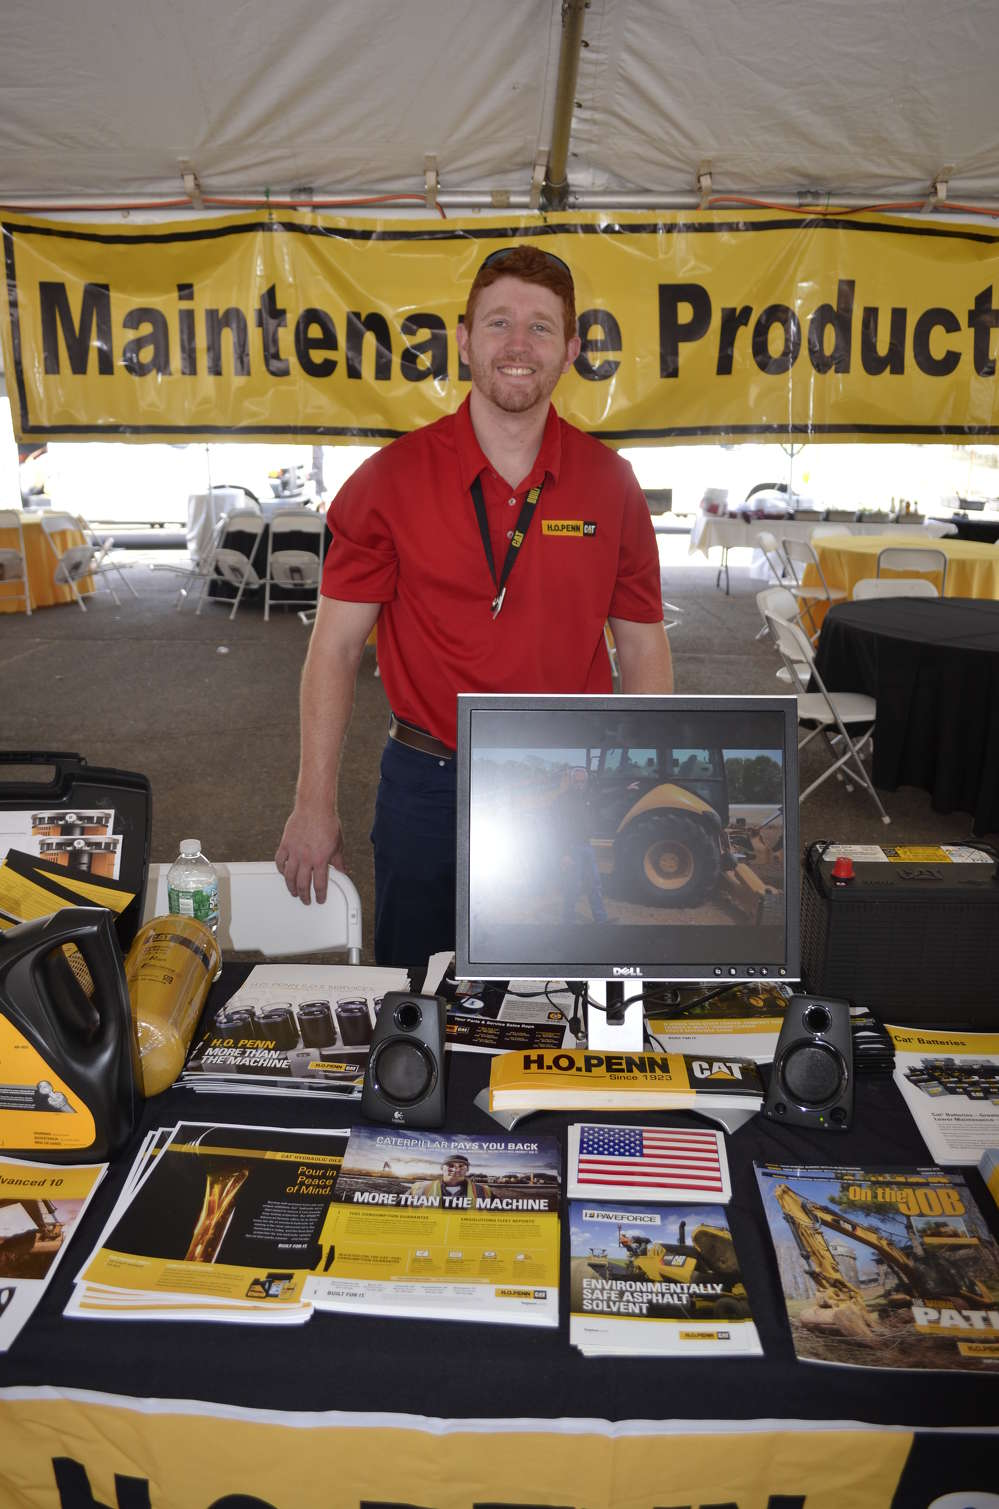 Dan Slate of H.O. Penn shows a few of the hundreds of maintenance products available from Caterpillar and H.O. Penn.